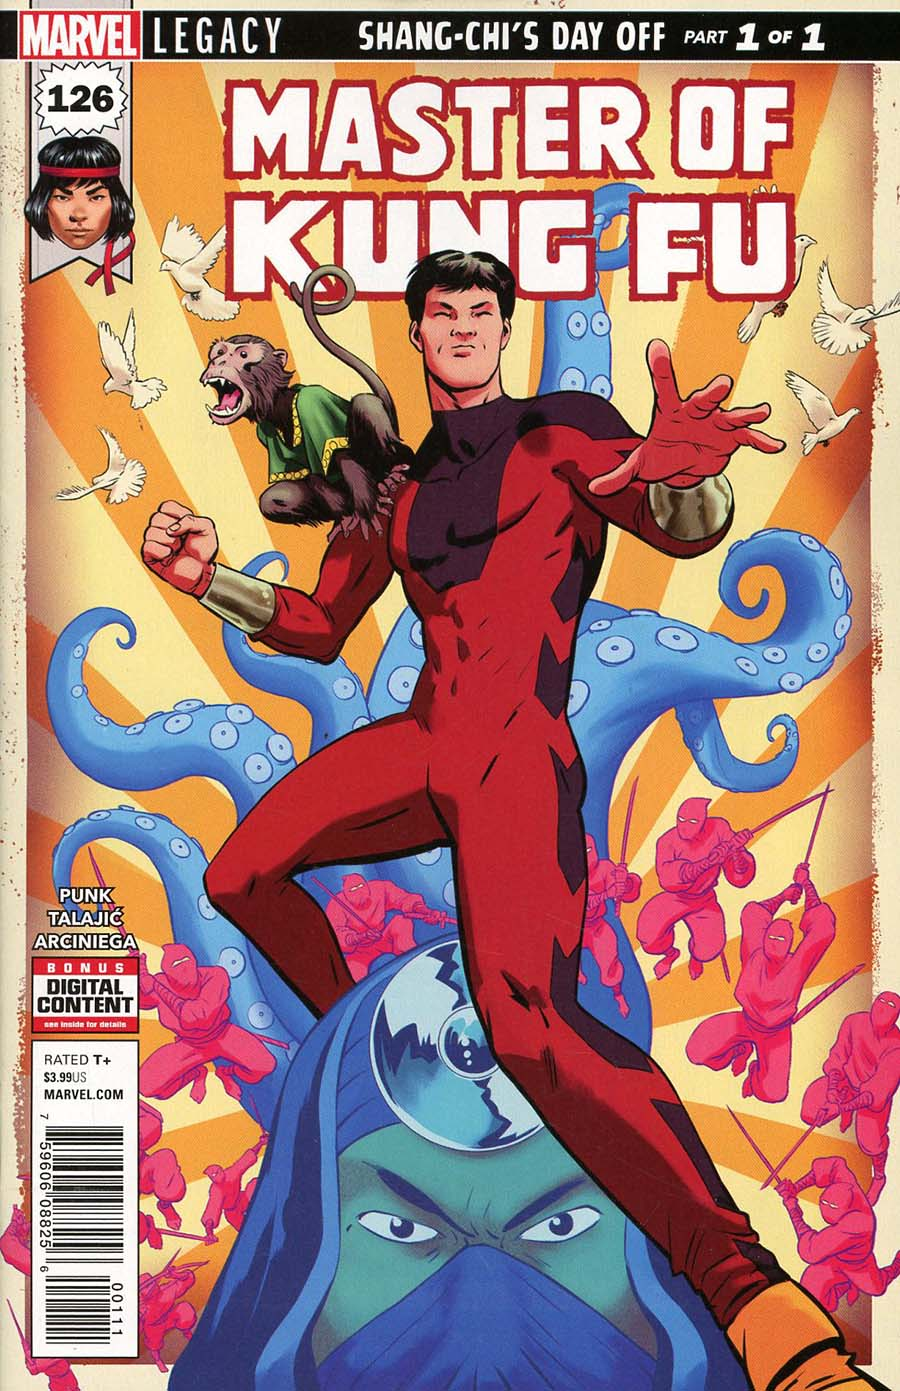 Master Of Kung Fu Vol 2 #126 Cover A Regular Javier Rodriguez Cover (Marvel Legacy Tie-In)